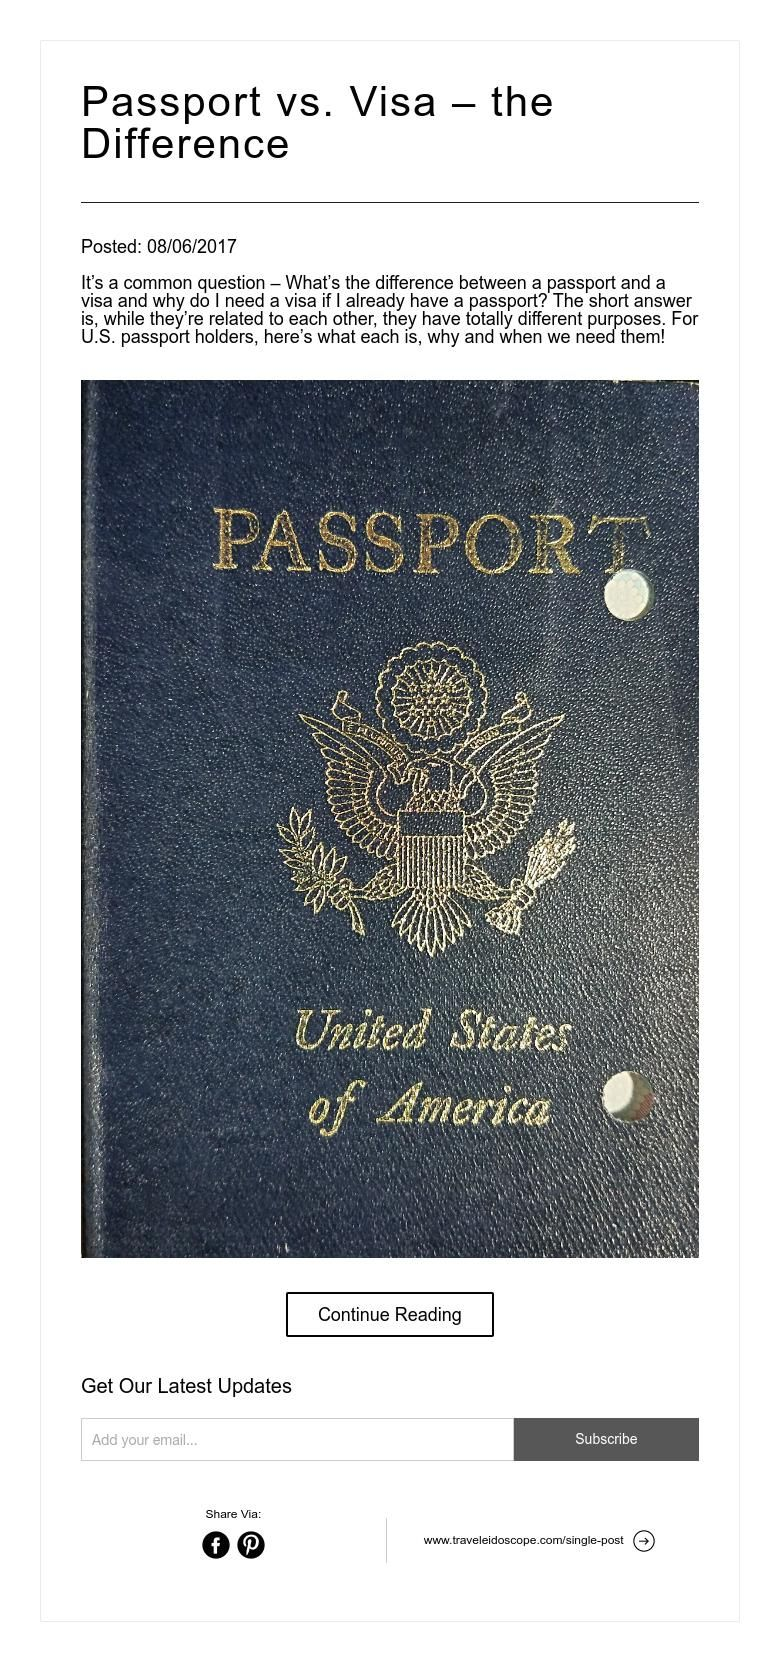 what is the purpose of a passport and visa